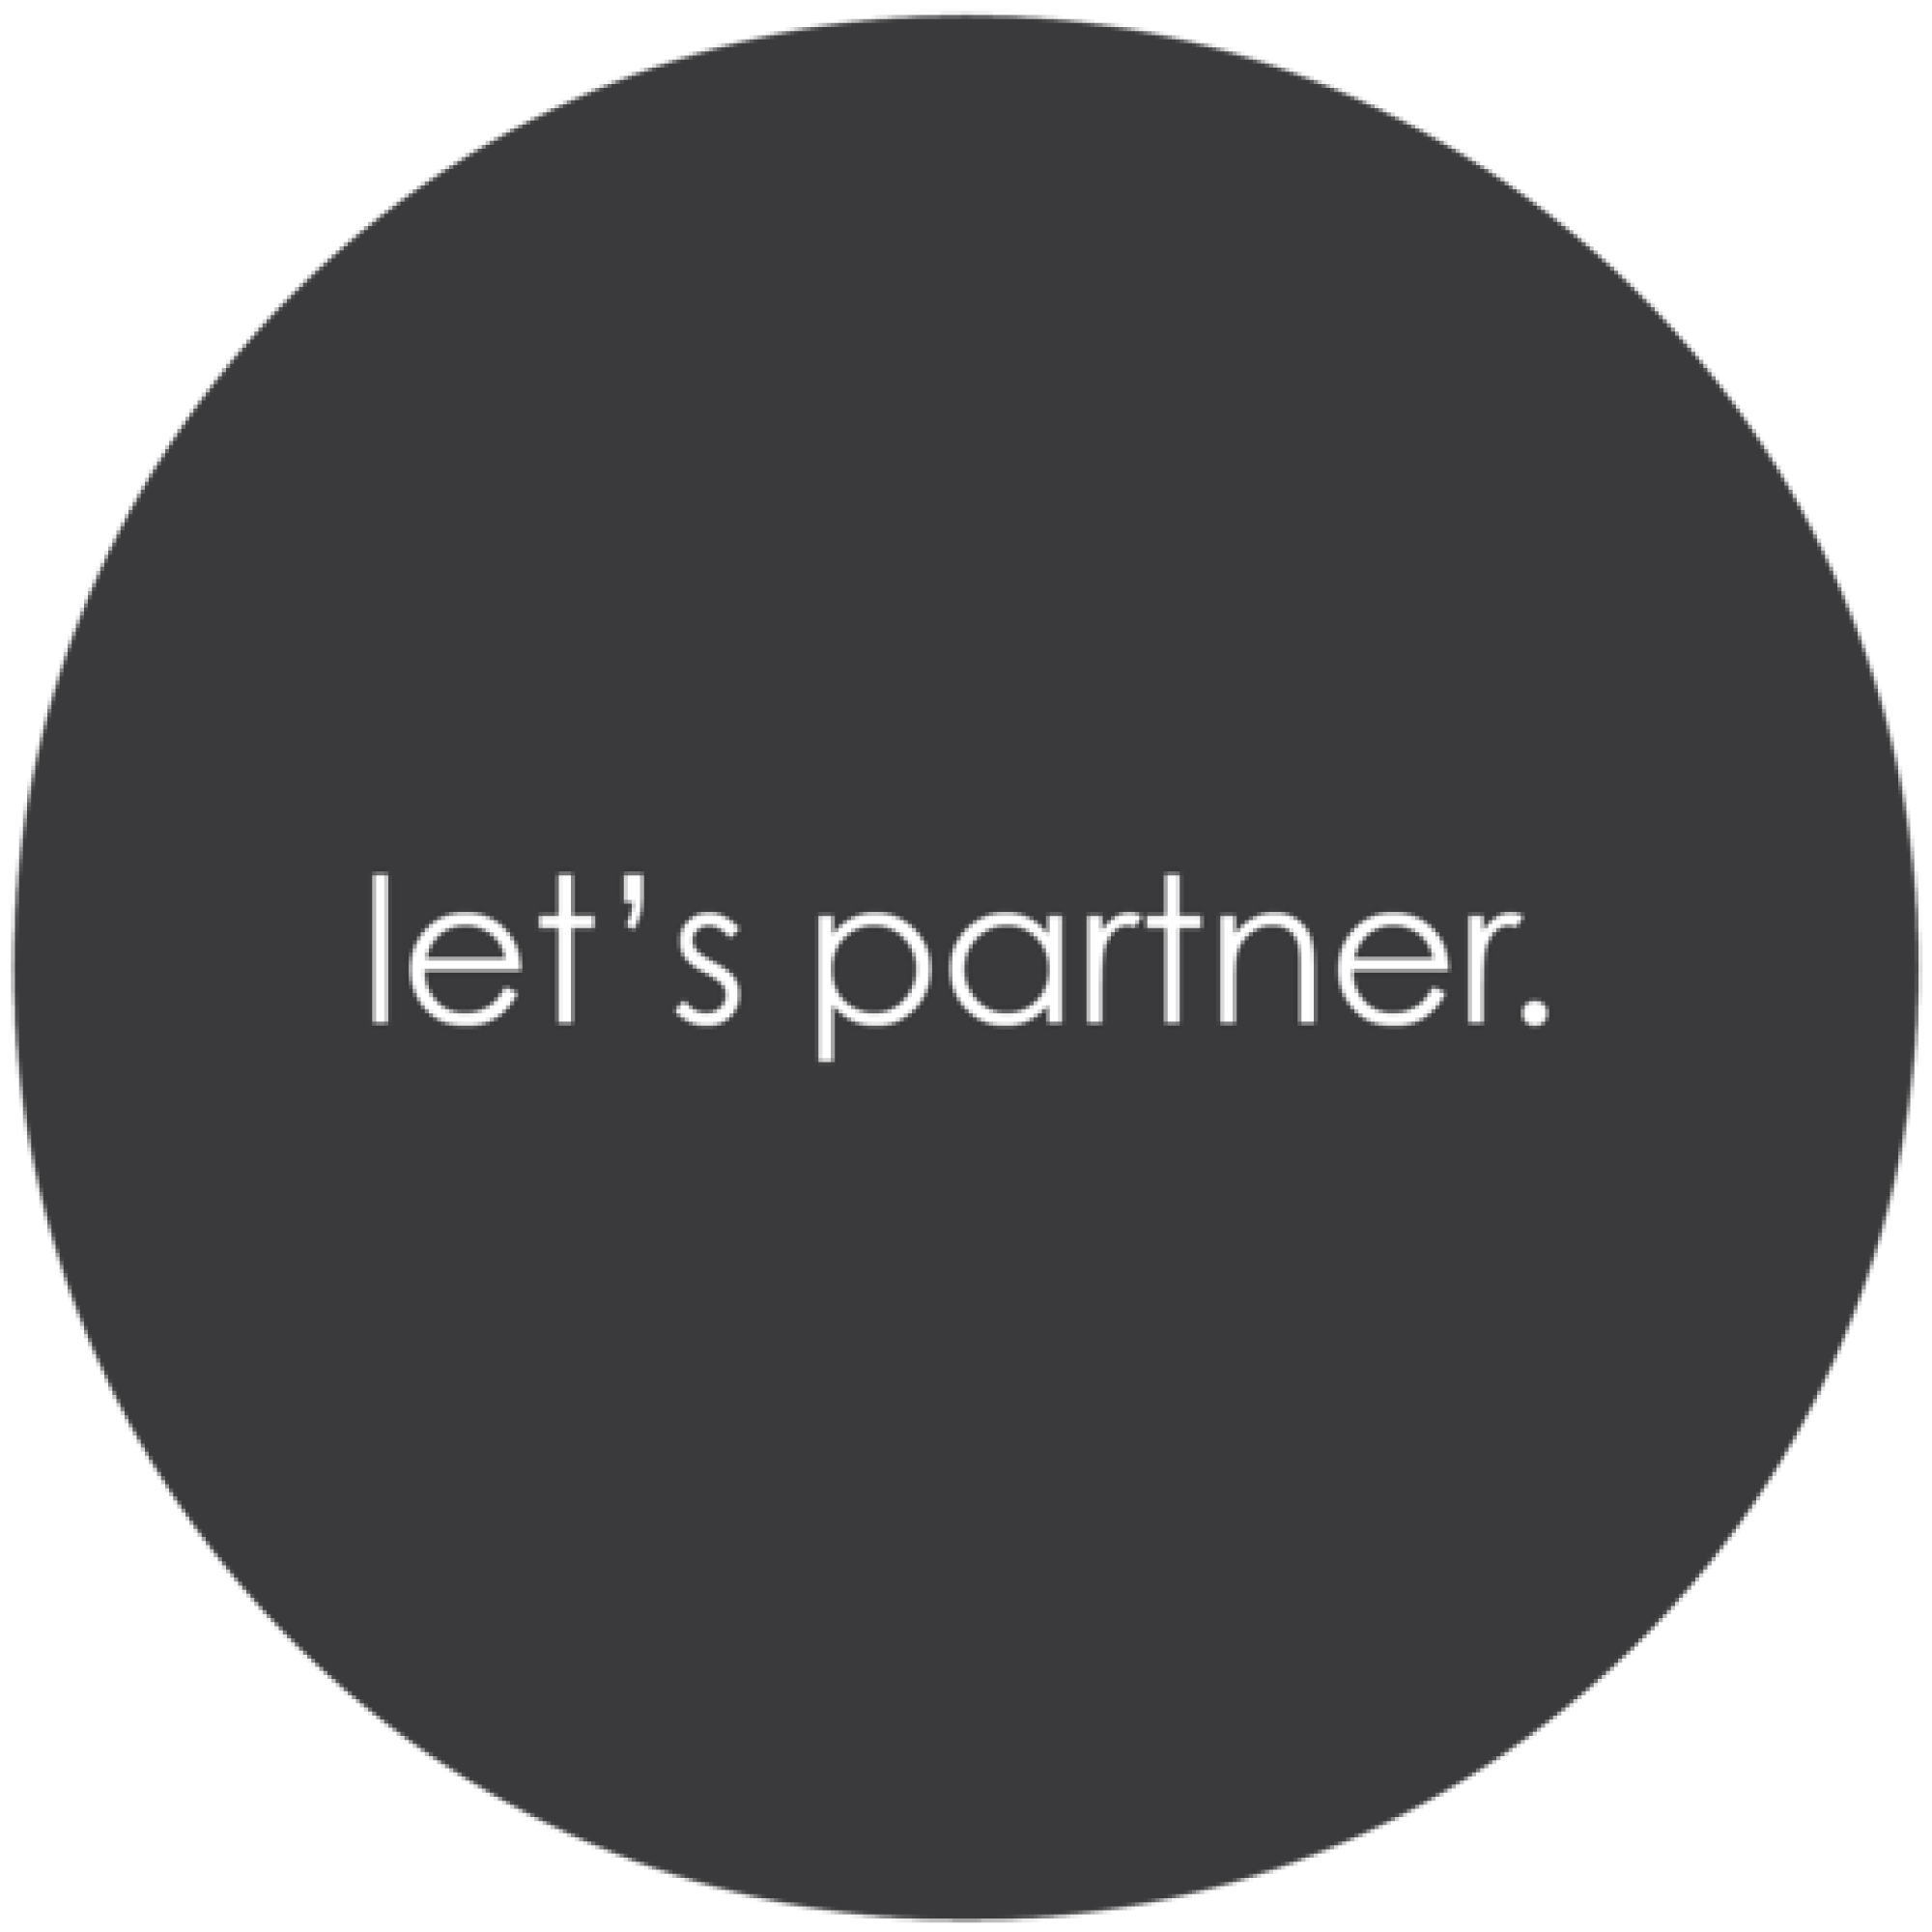 partner-logo-circle.png